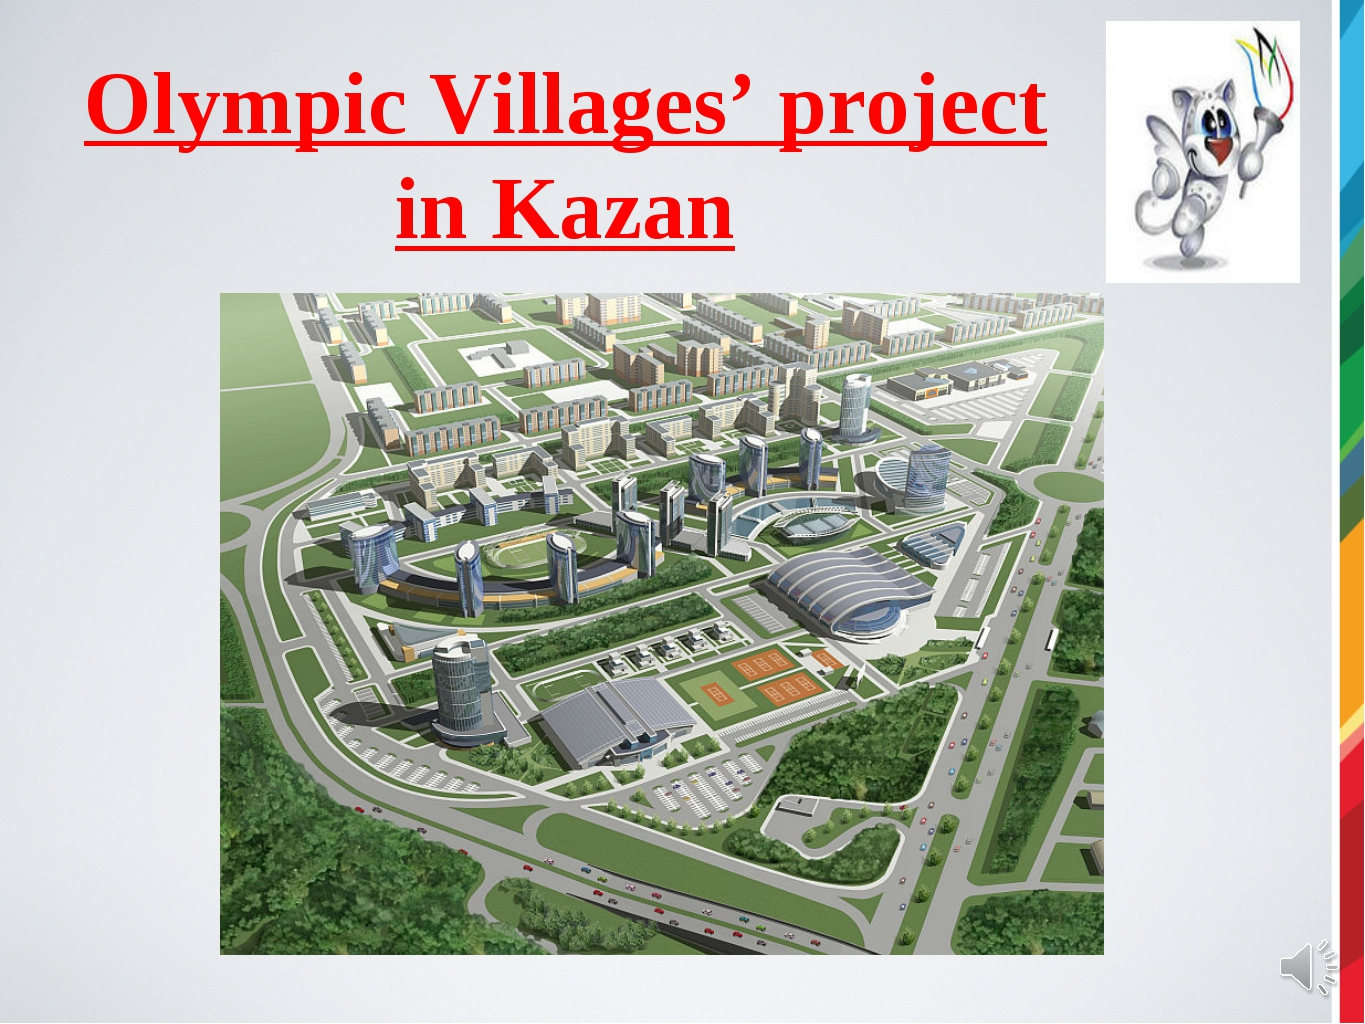 Olympic Villages' project in Kazan